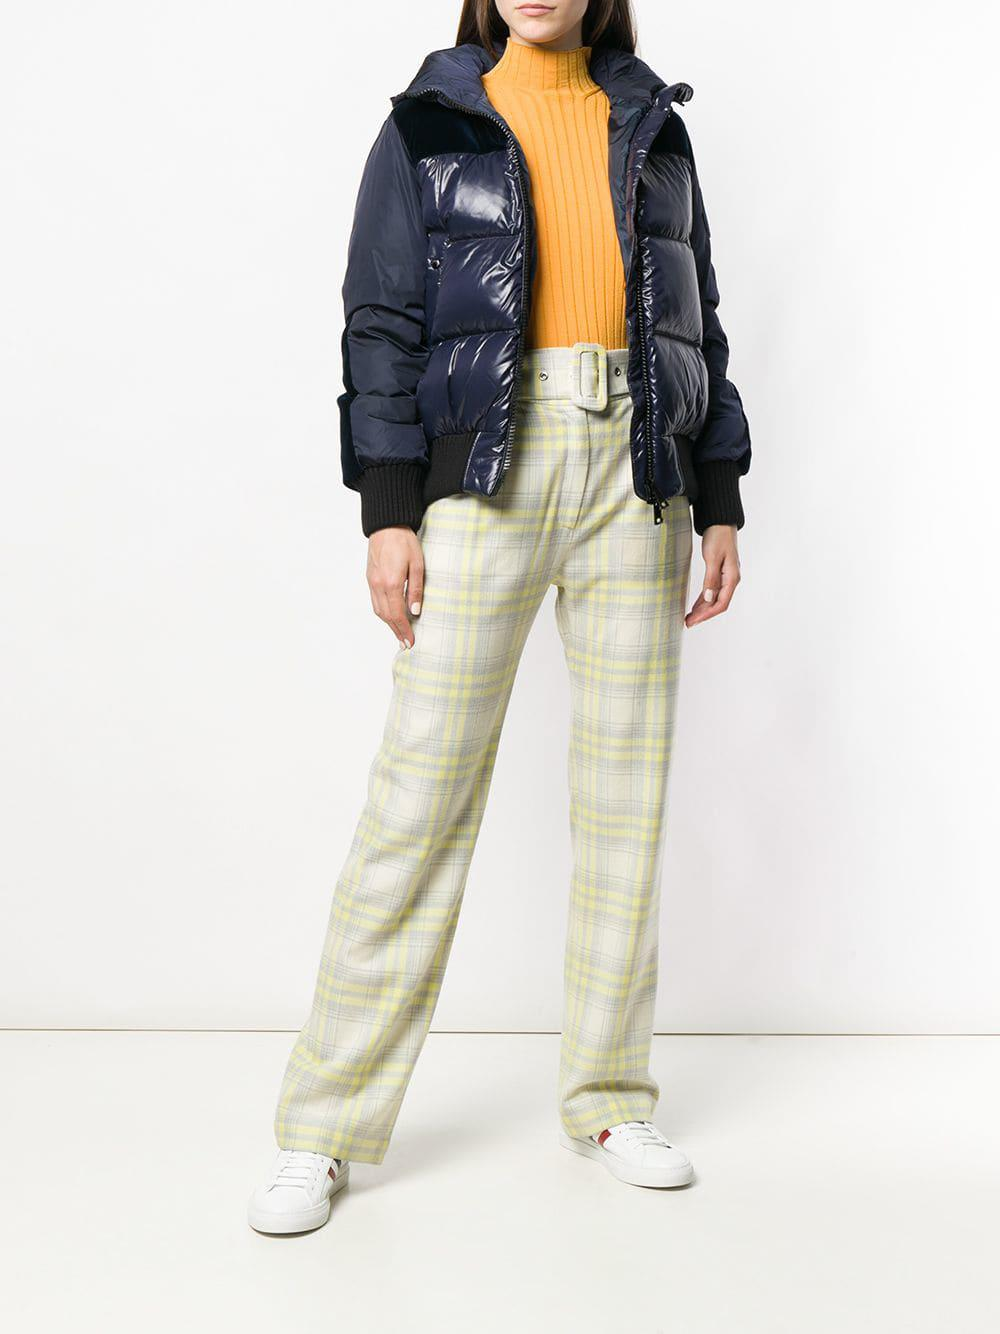 fdf865a5d198 Lyst - Moncler Panelled Puffer Jacket in Blue